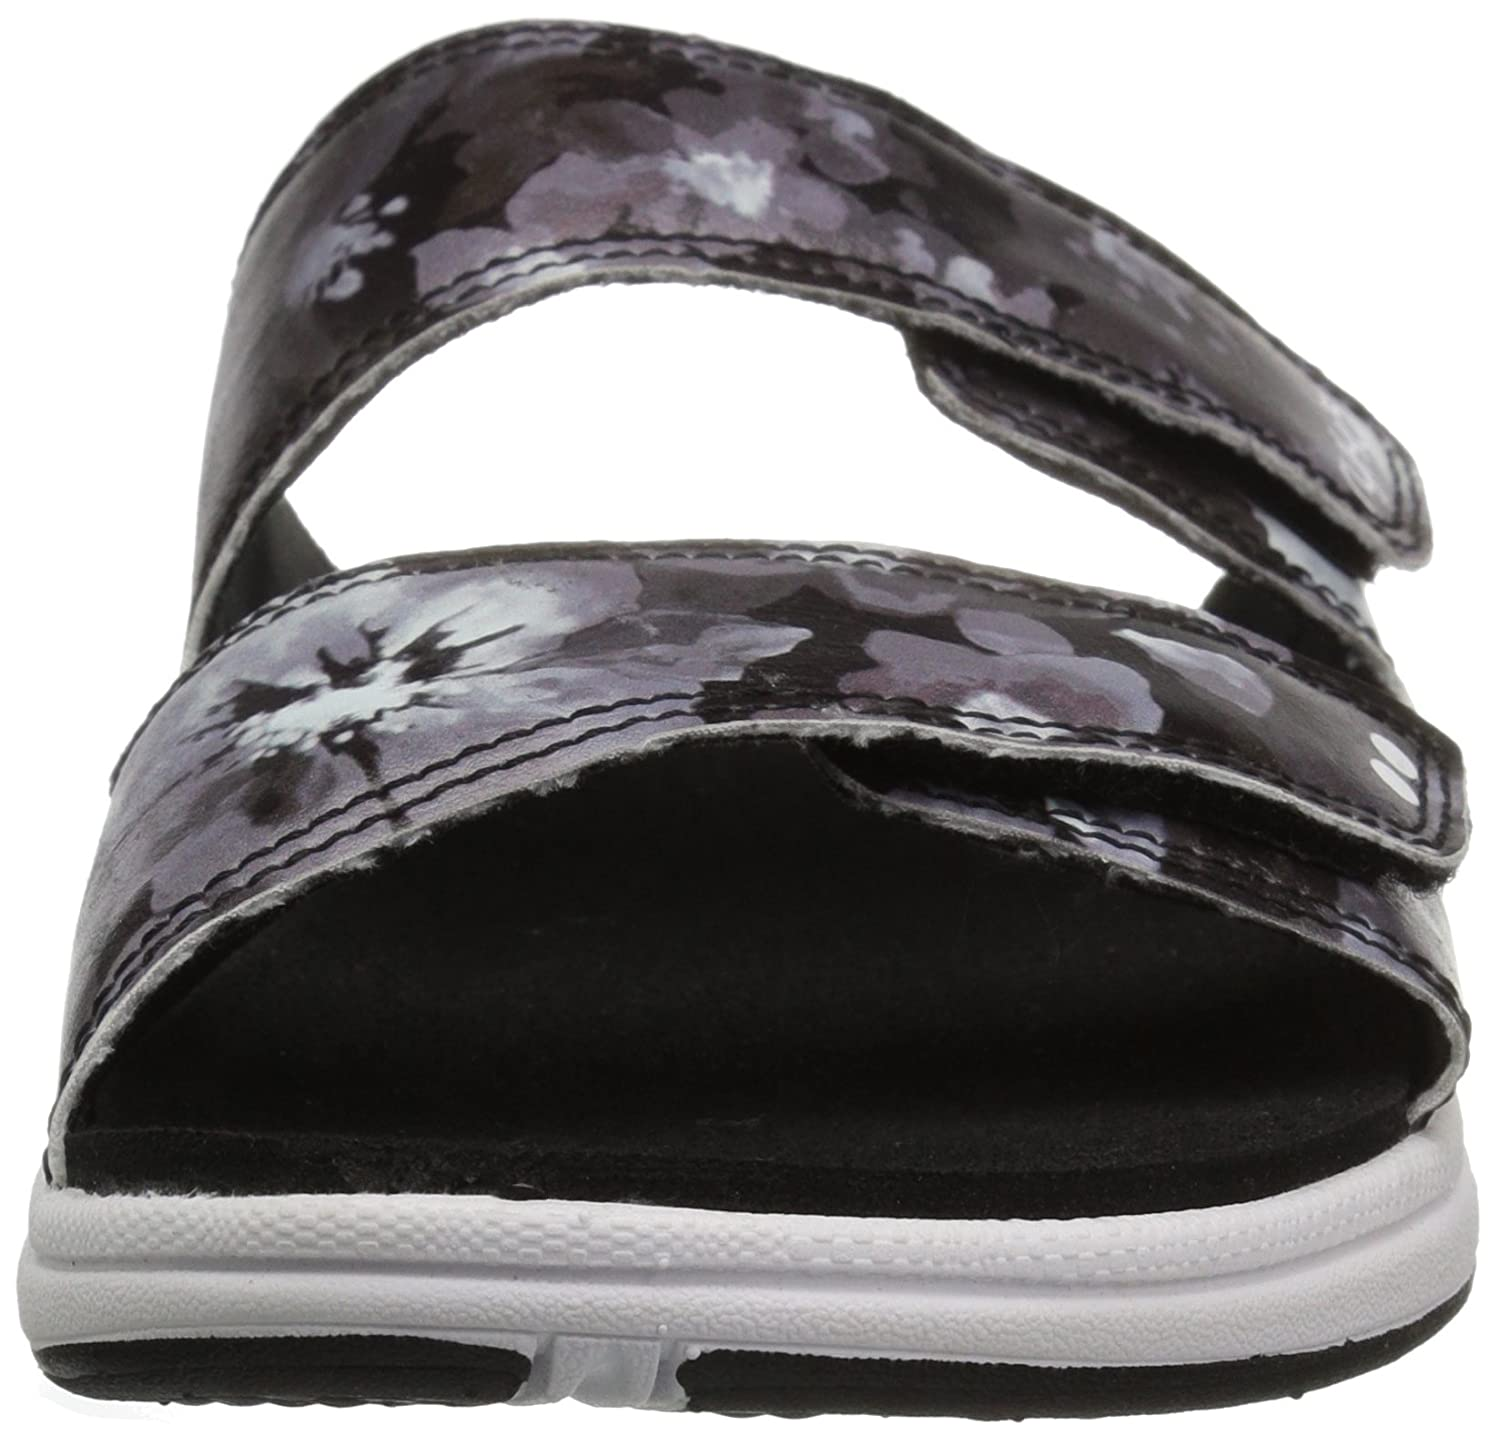 Ryka Women's Marilyn Slide Sandal B079ZD9QQ9 6.5 W US|Black/White